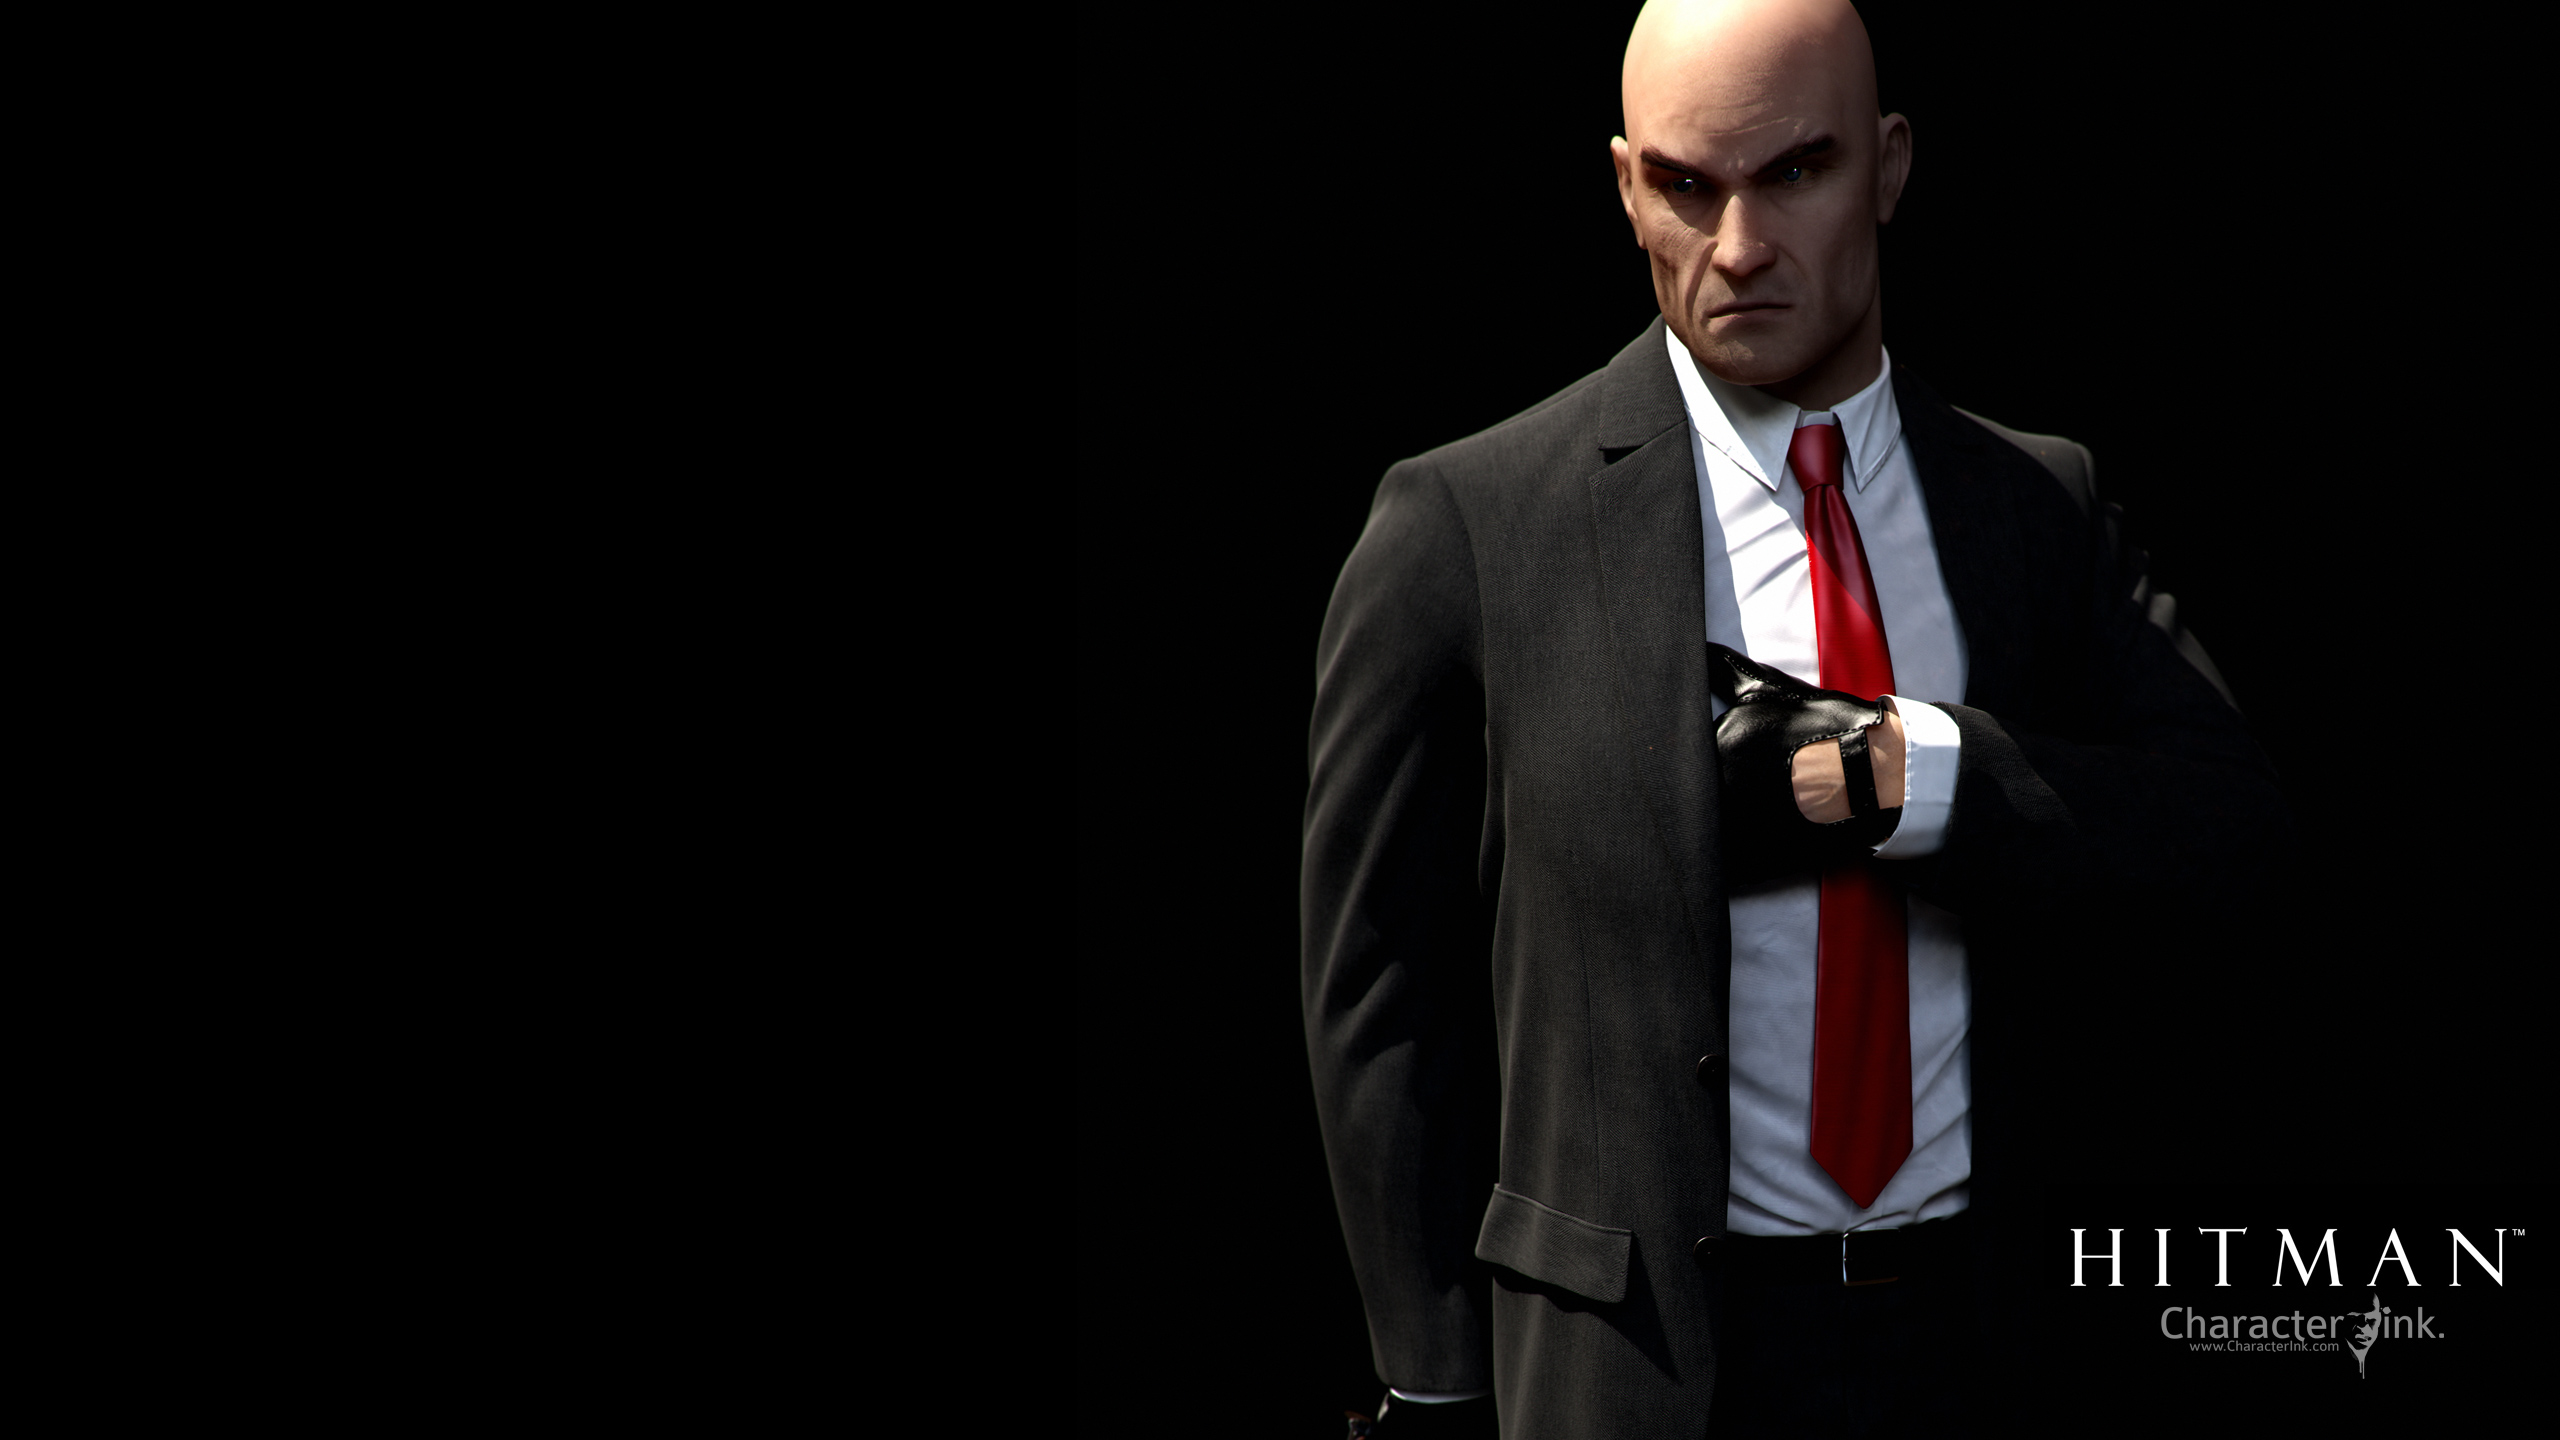 Hitman Agent 47 Character HD Wallpaper Stylish HD Wallpapers 2560x1440